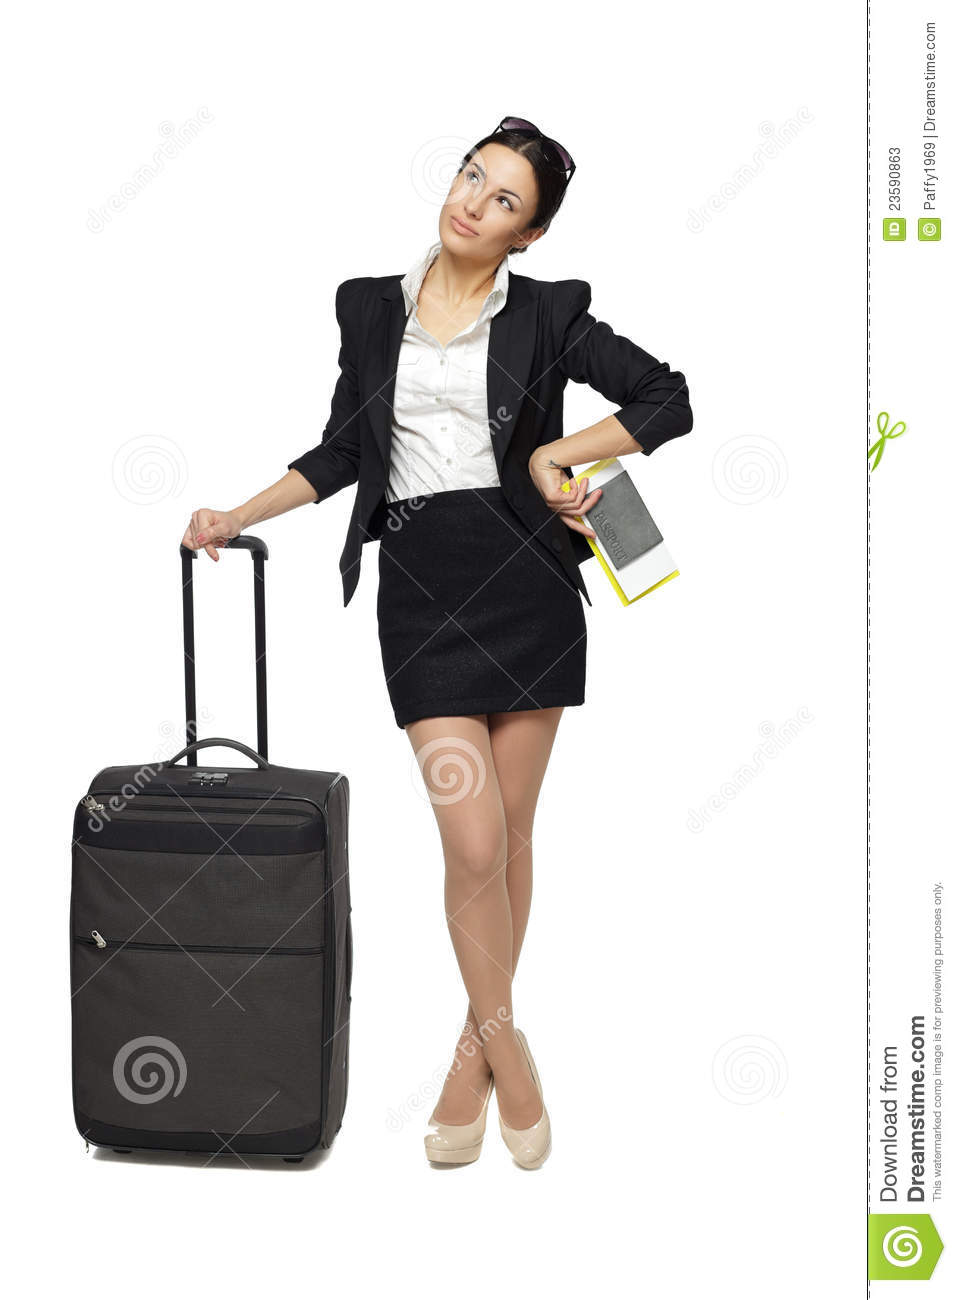 business travel woman cartoon vector cartoondealercom